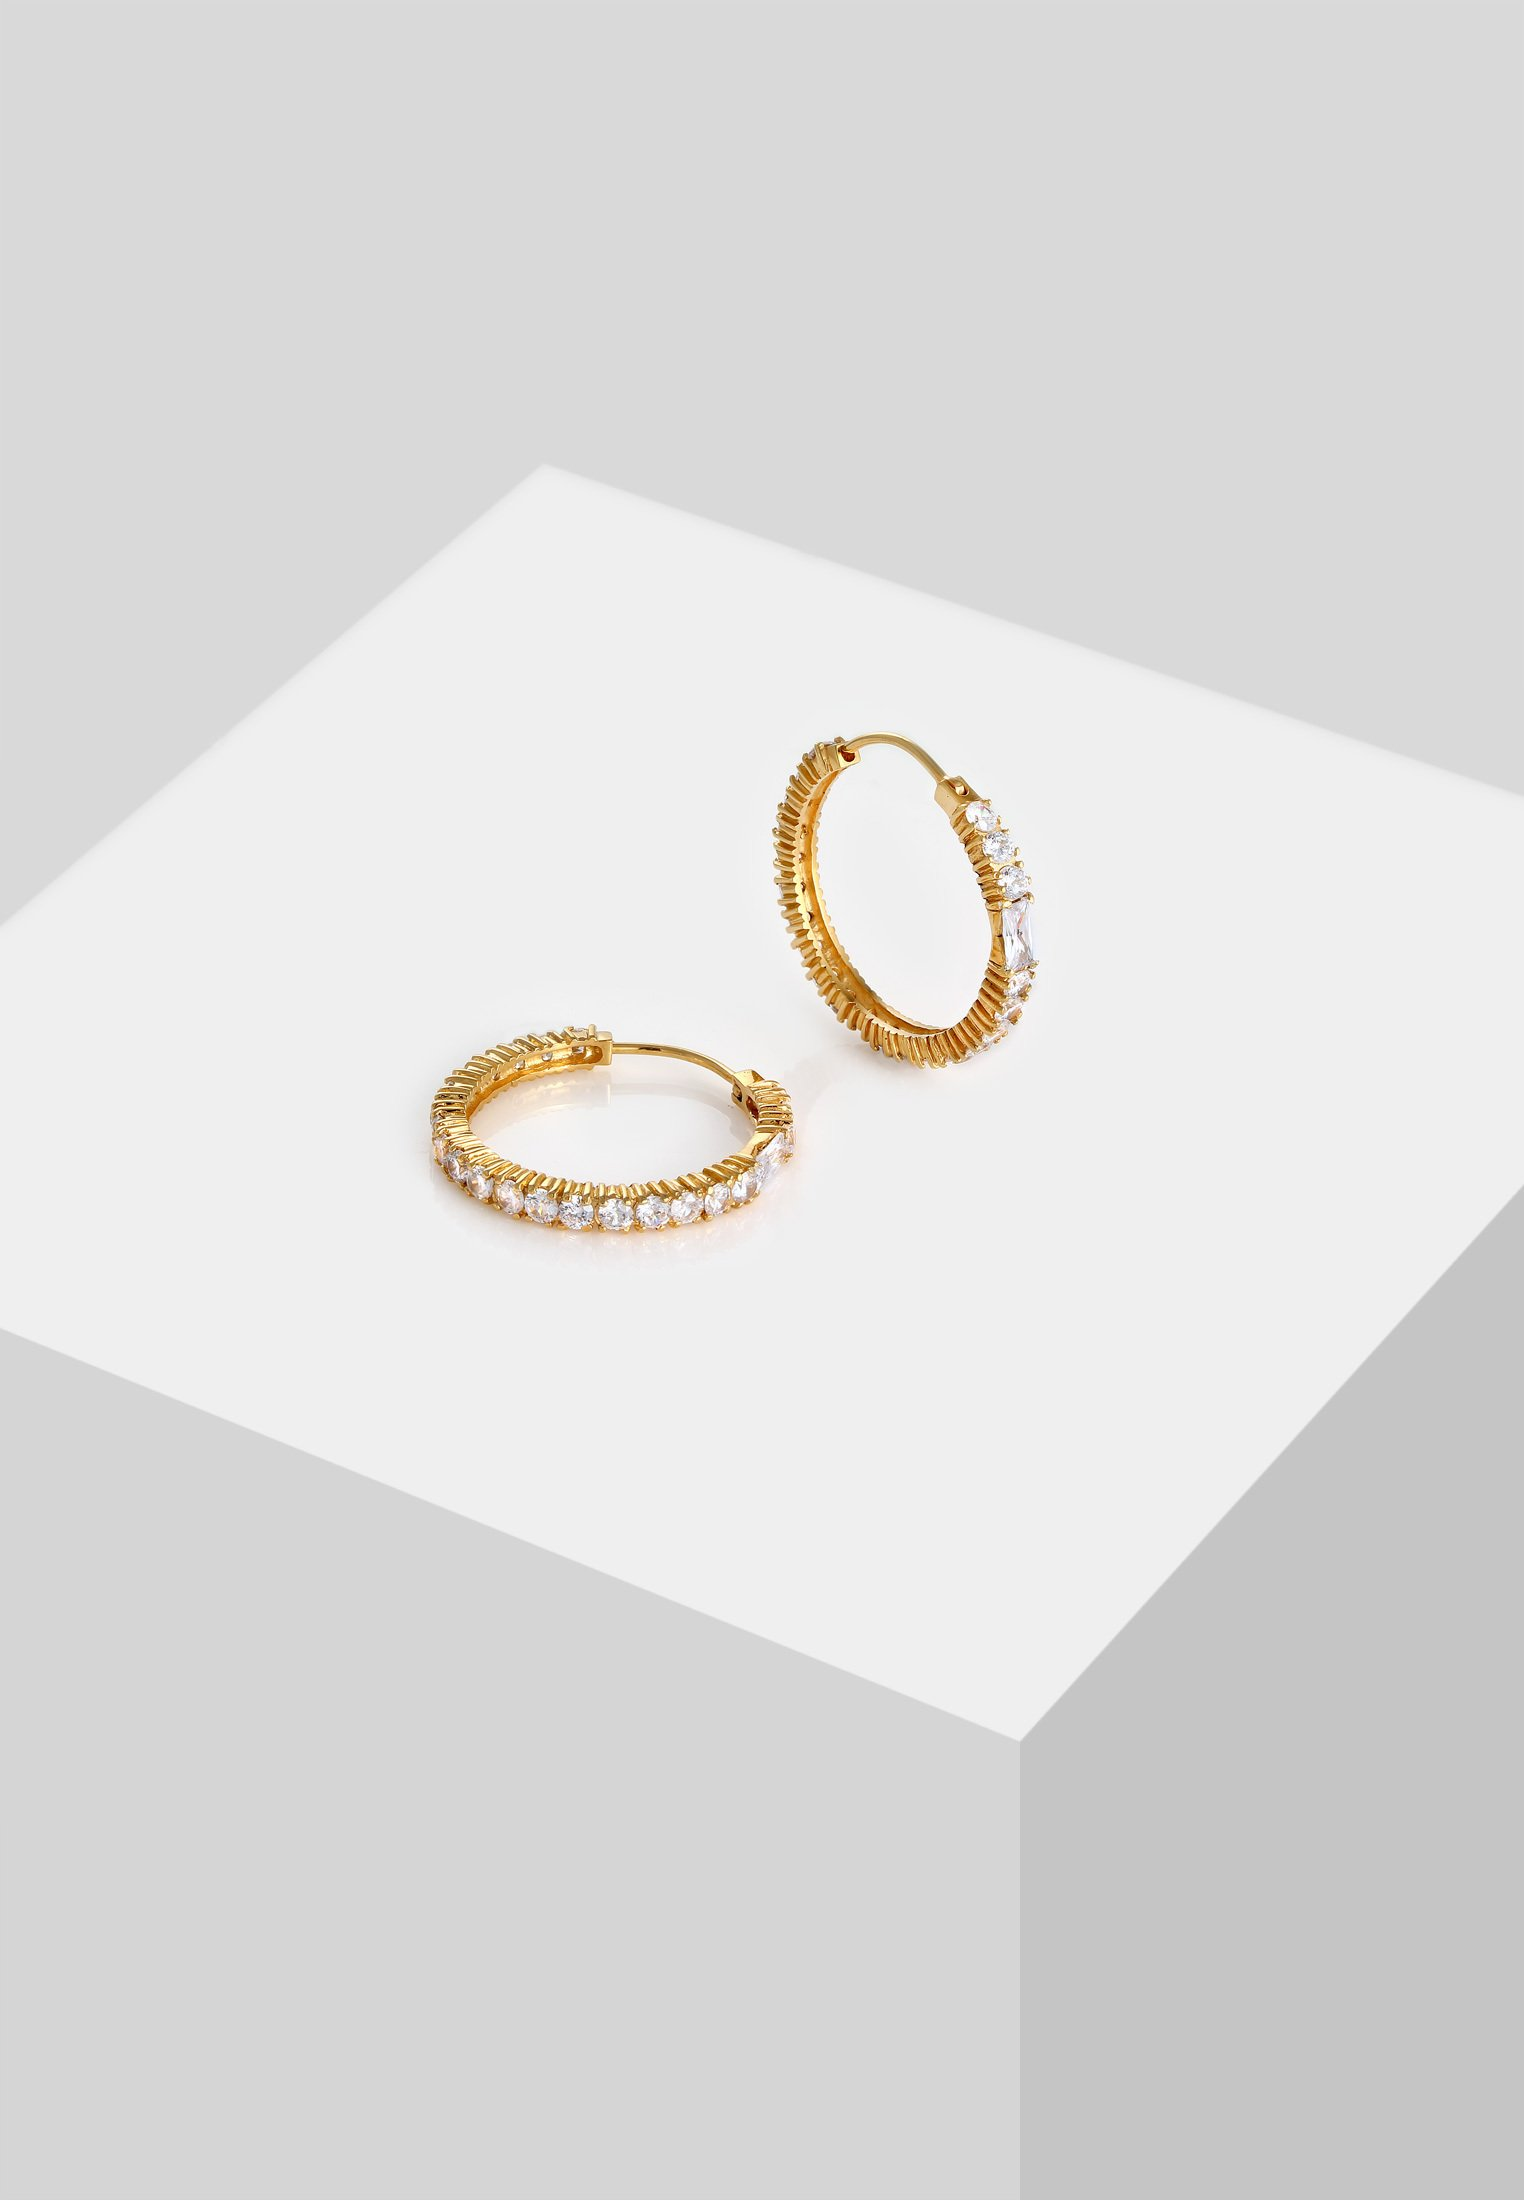 New Lower Prices Classic Accessories Elli CREOLEN Earrings gold Xitbcu2yB QP2XBlVlk